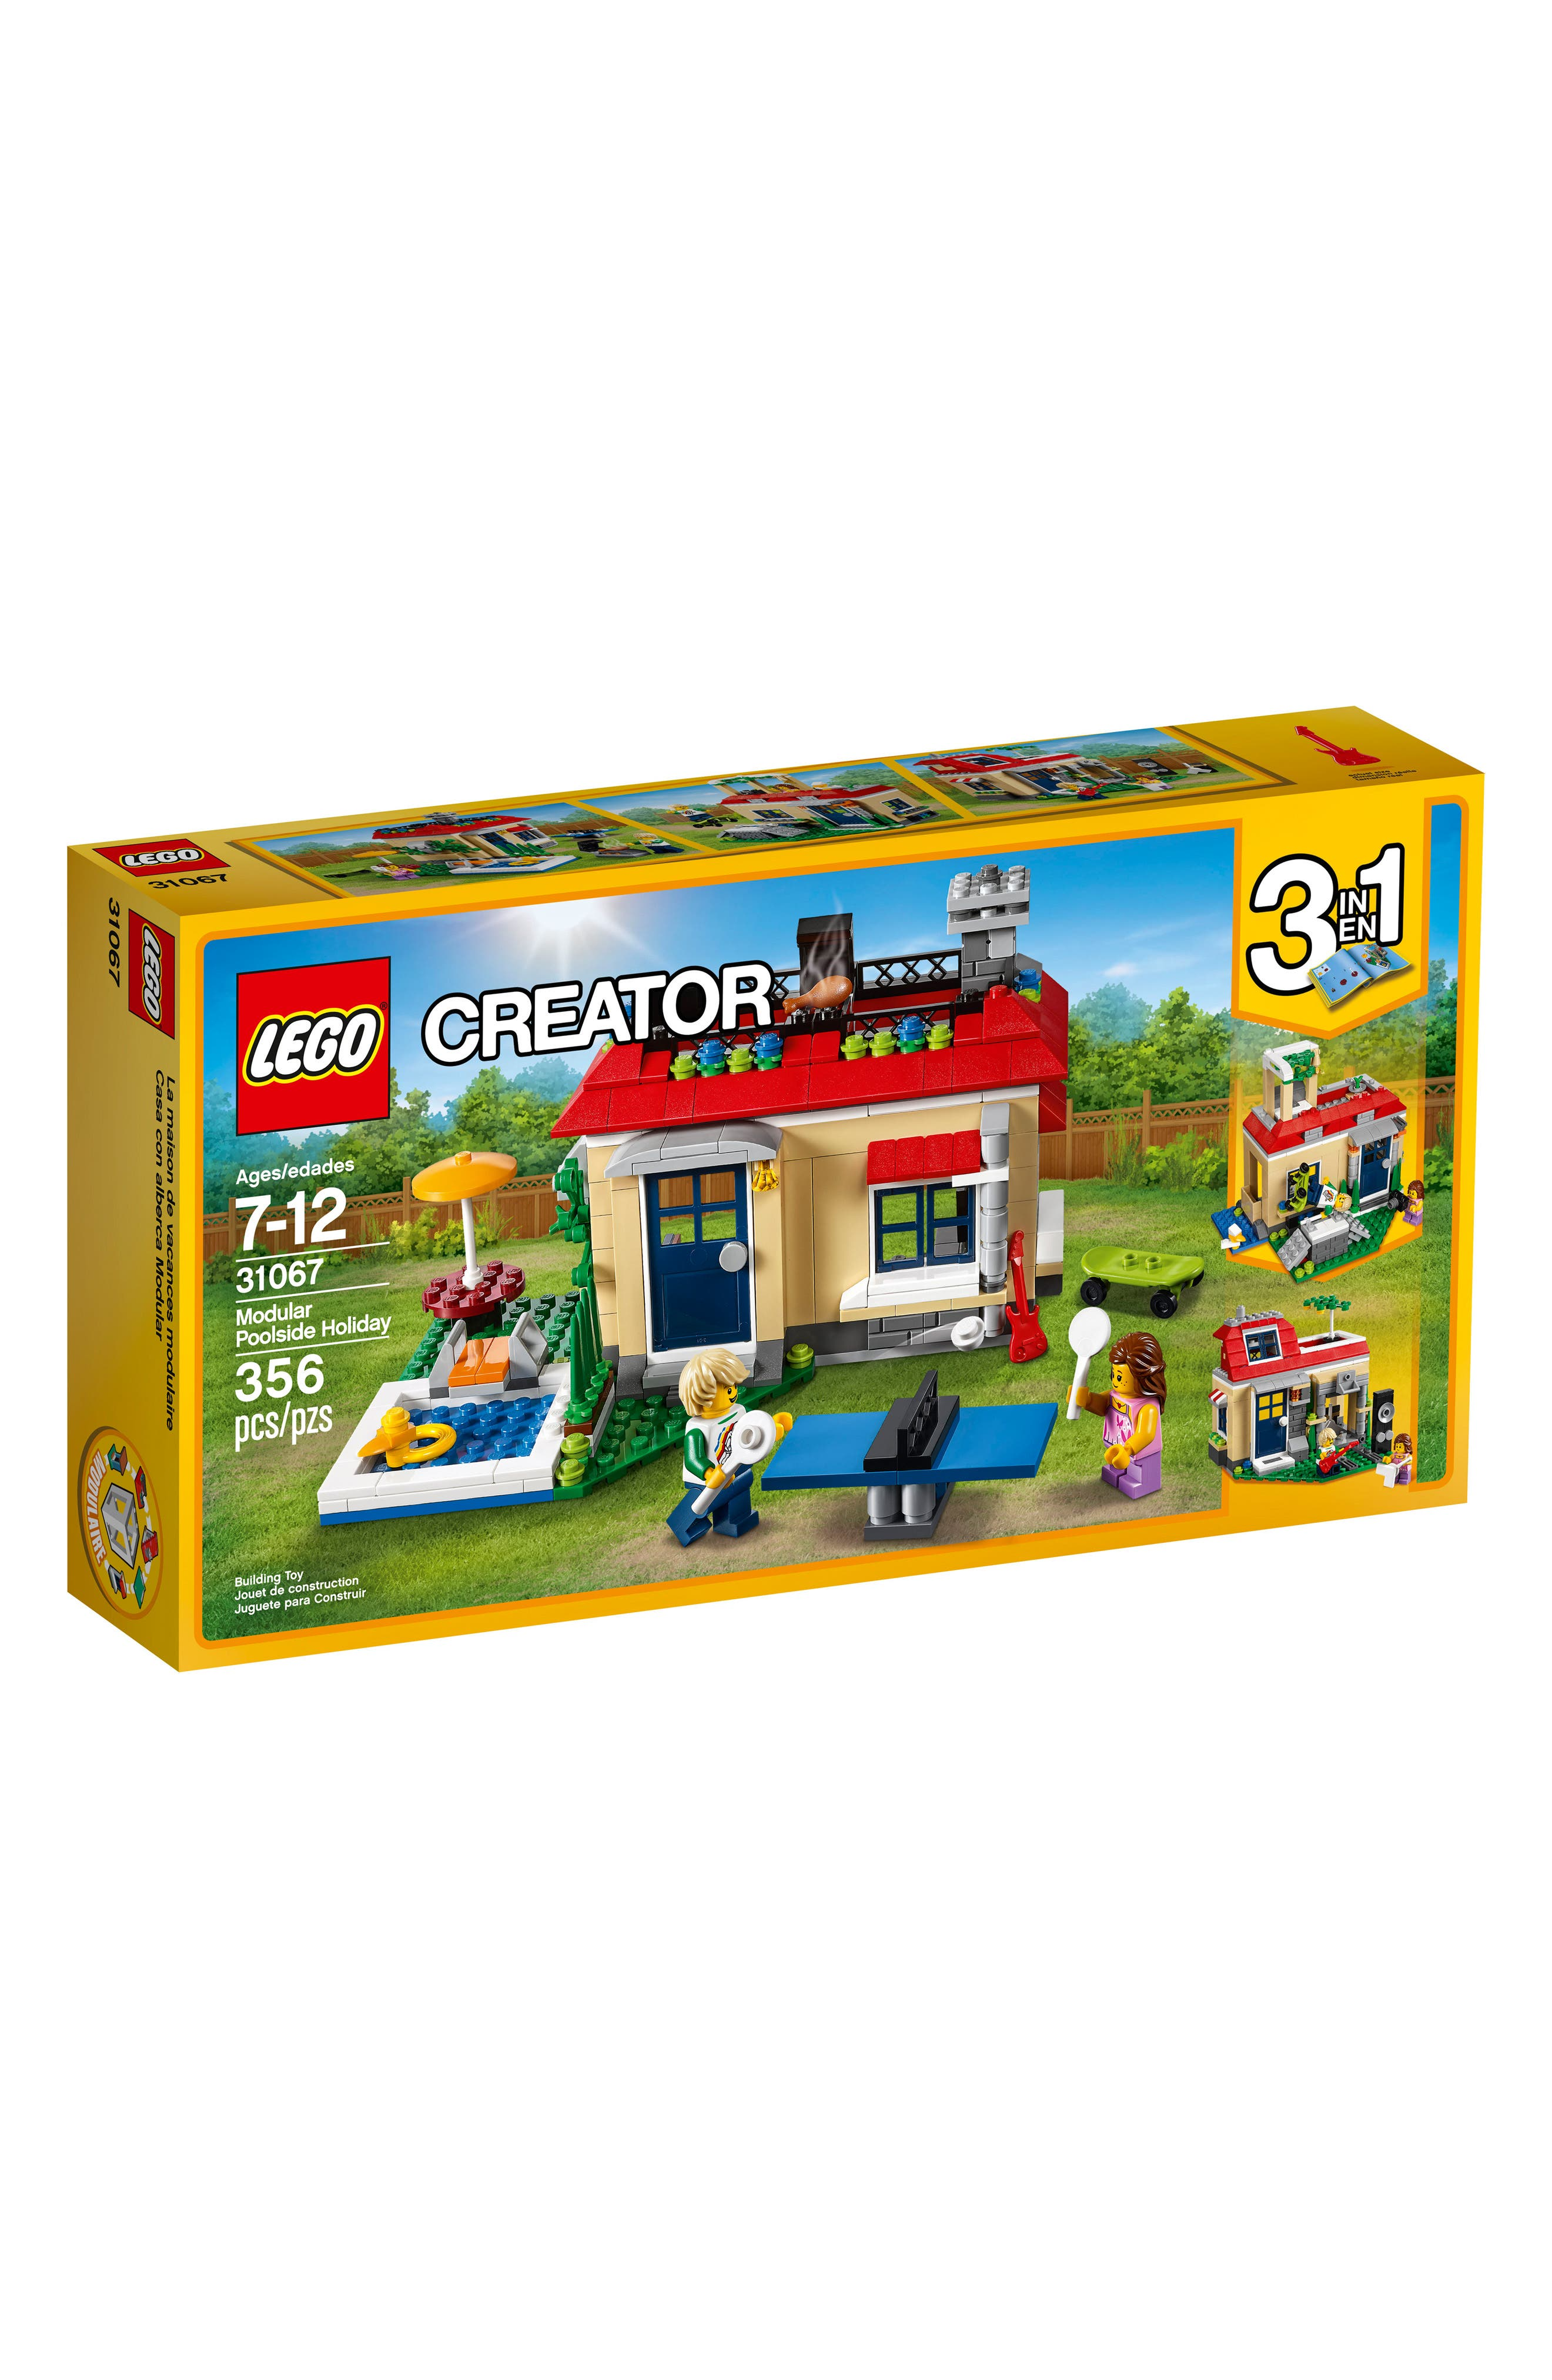 Creator 3-in-1 Modular Poolside Holiday Play Set - 31067,                         Main,                         color, Multi